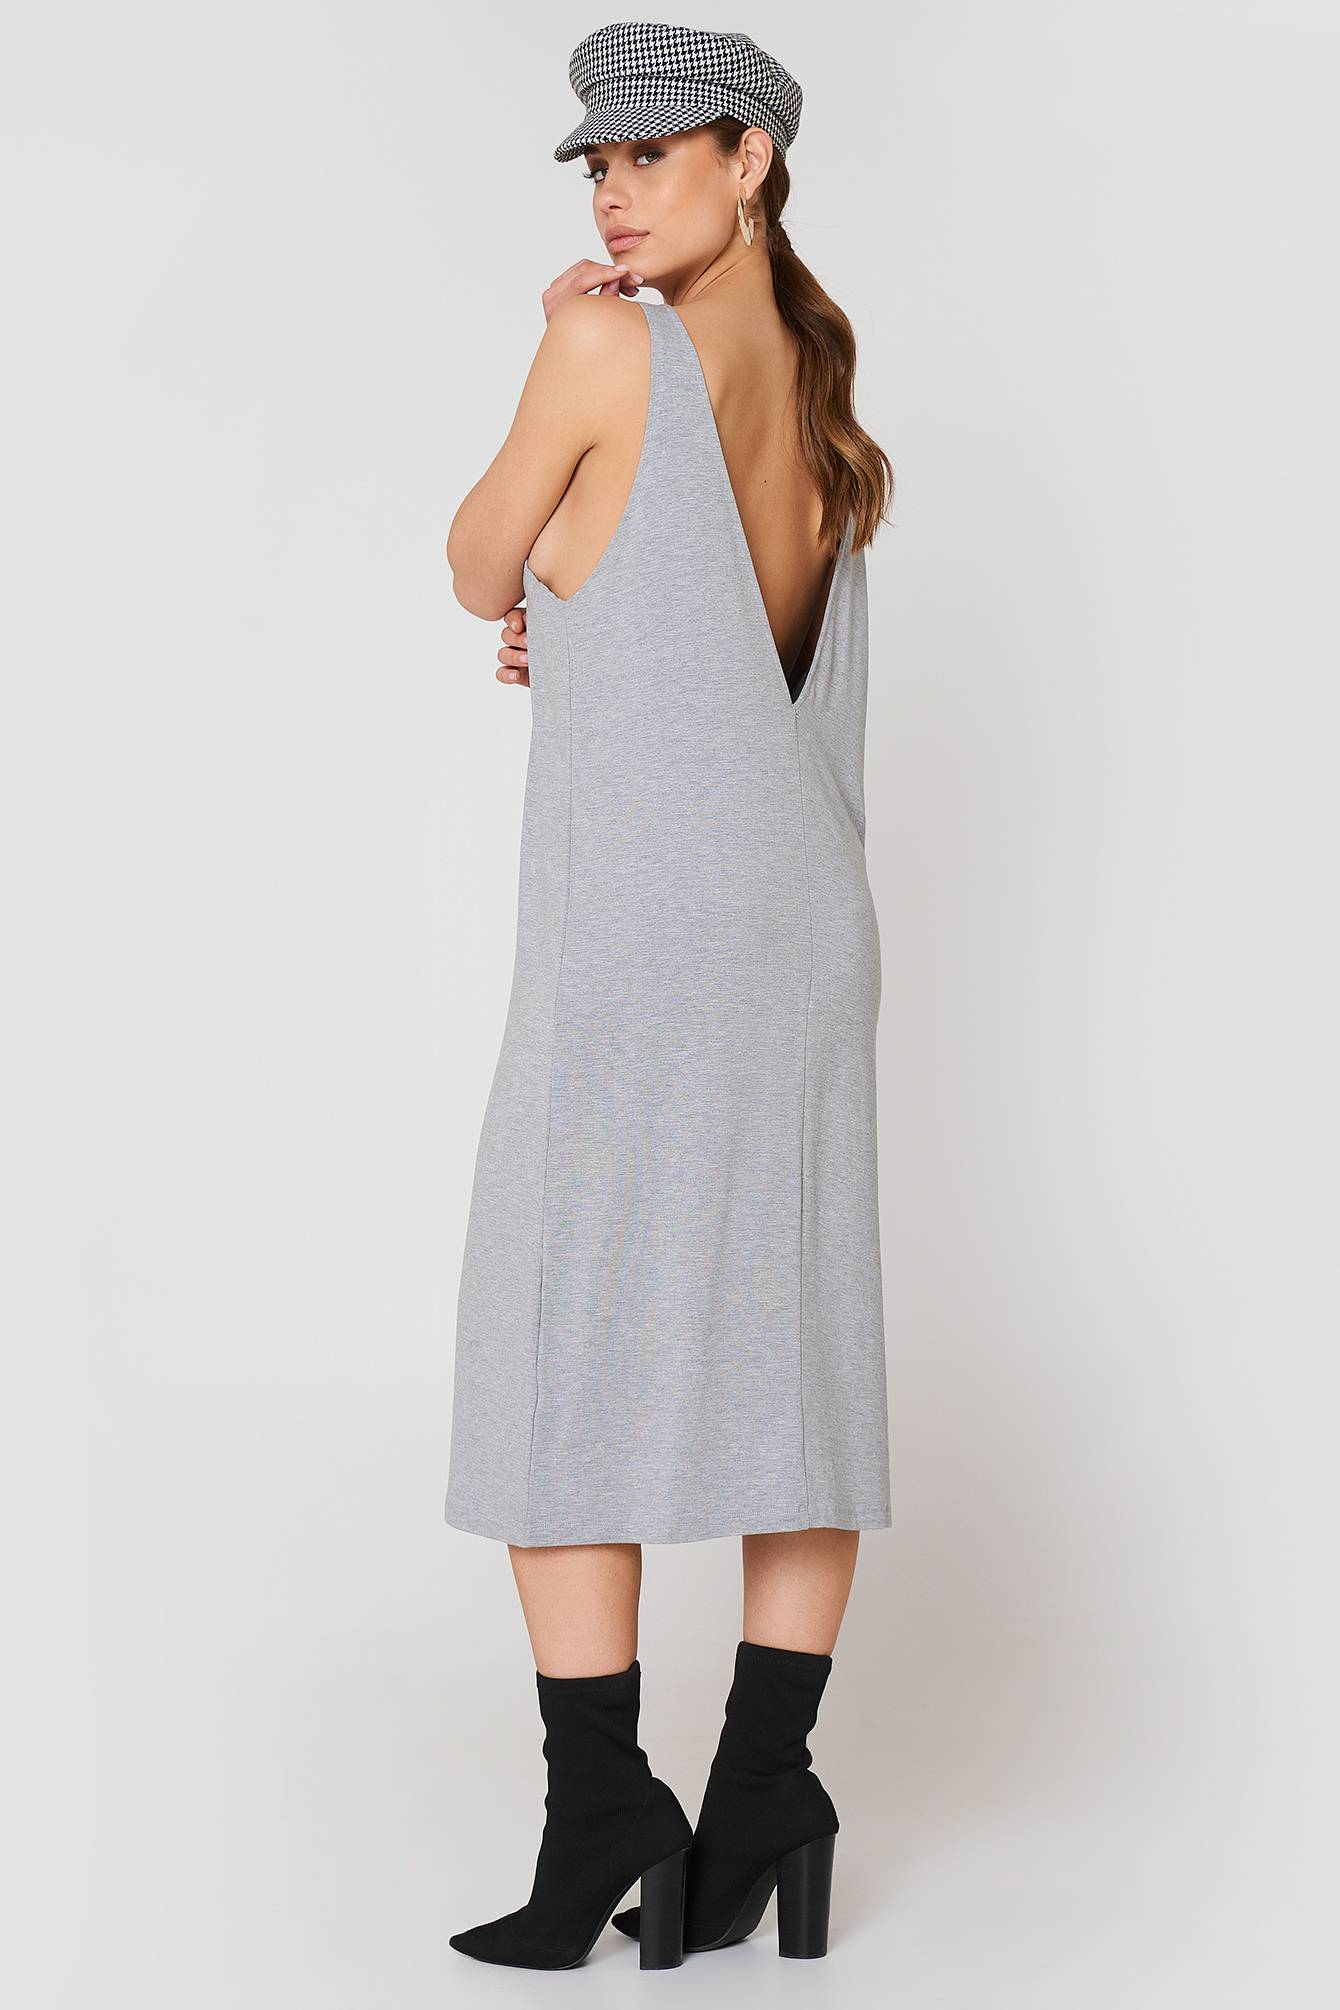 Dr Denim Natalia Dress - Grey